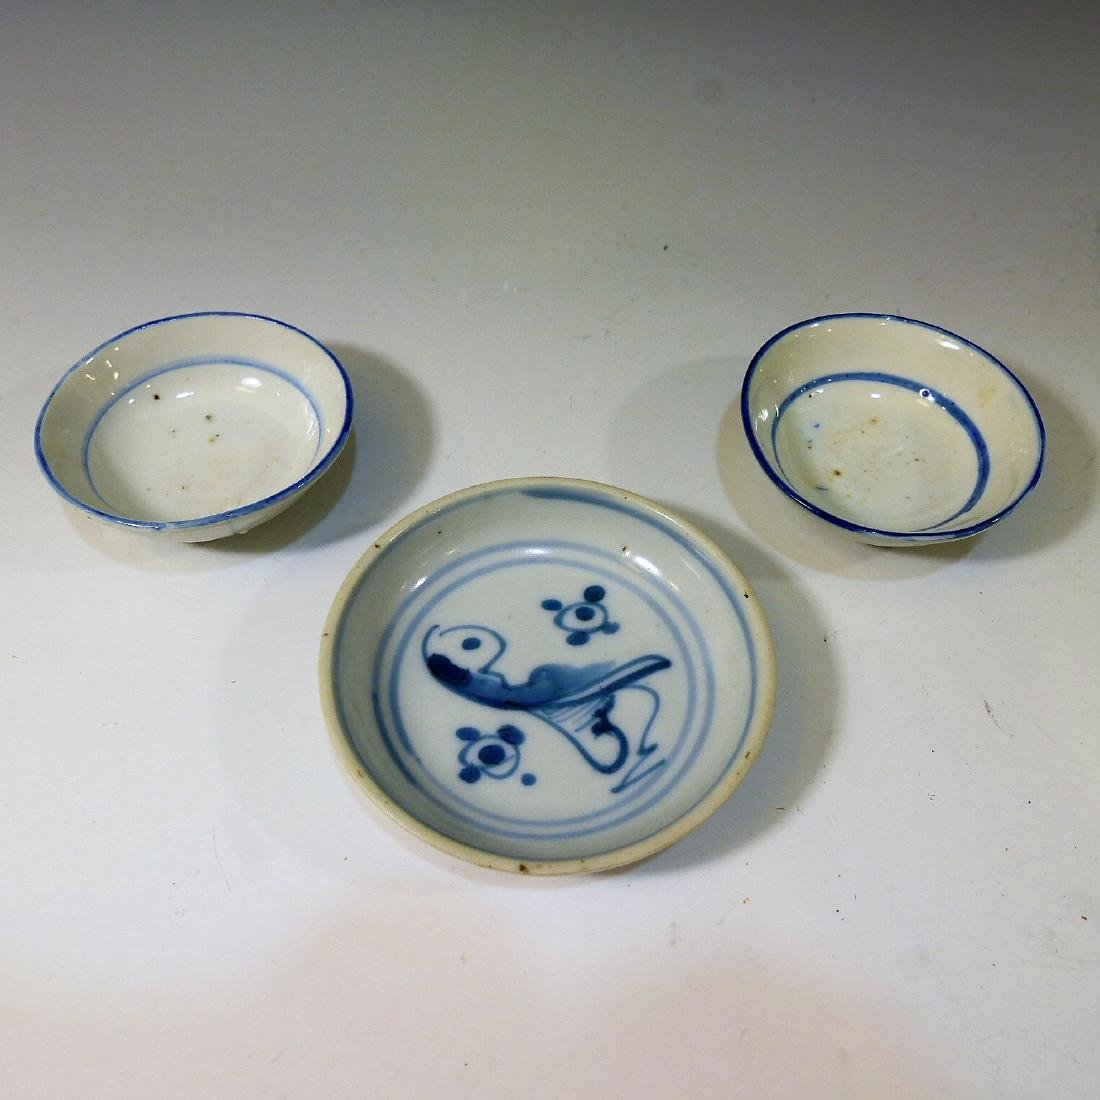 3 CHINESE ANTIQUE BLUE WHITE PORCELAIN DISH - QING